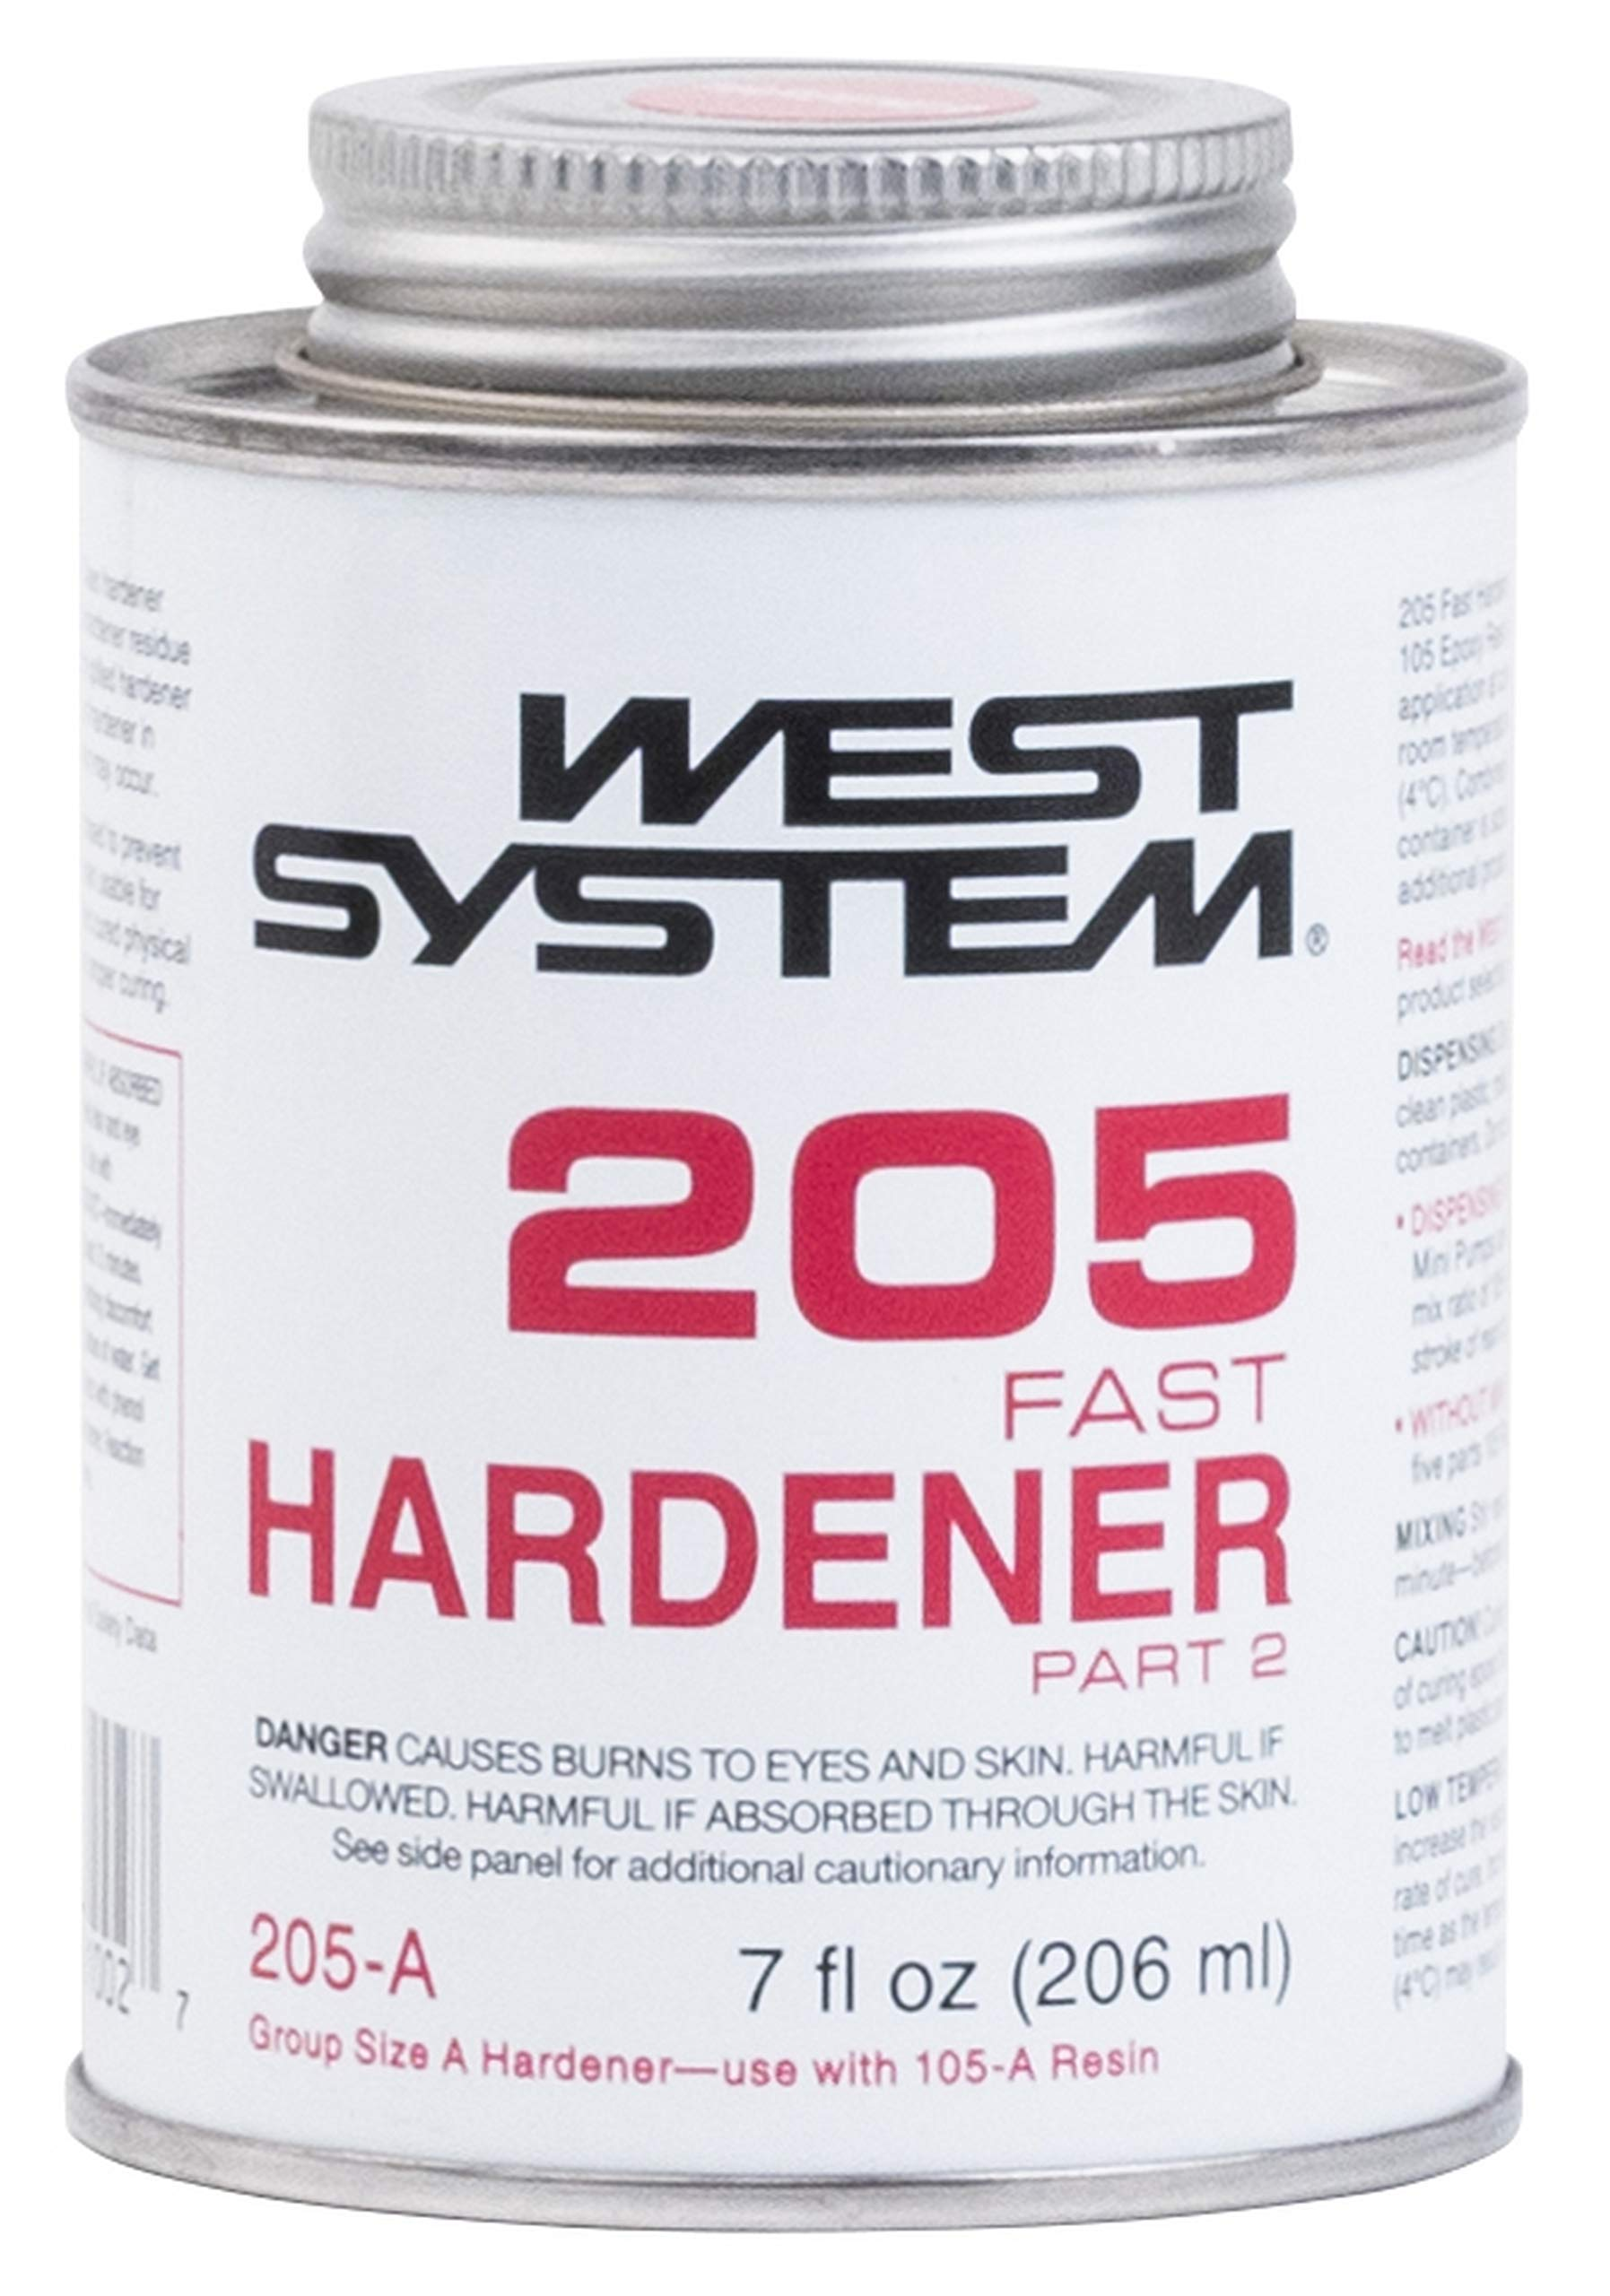 West System 205-A Fast Hardener